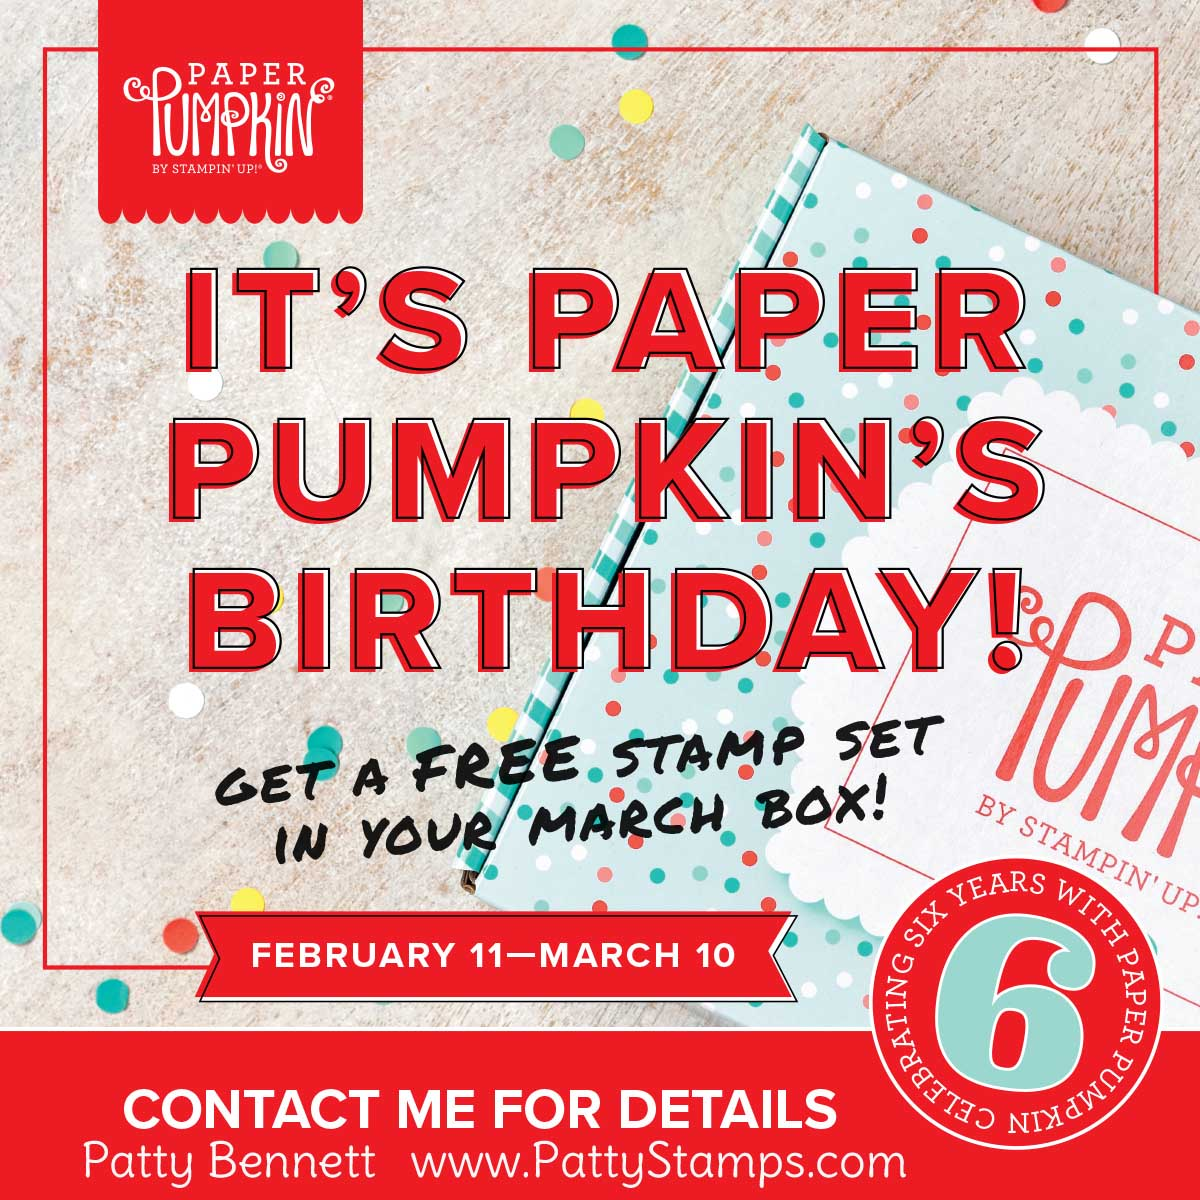 Have you signed up for the March Paper Pumpkin Kit?